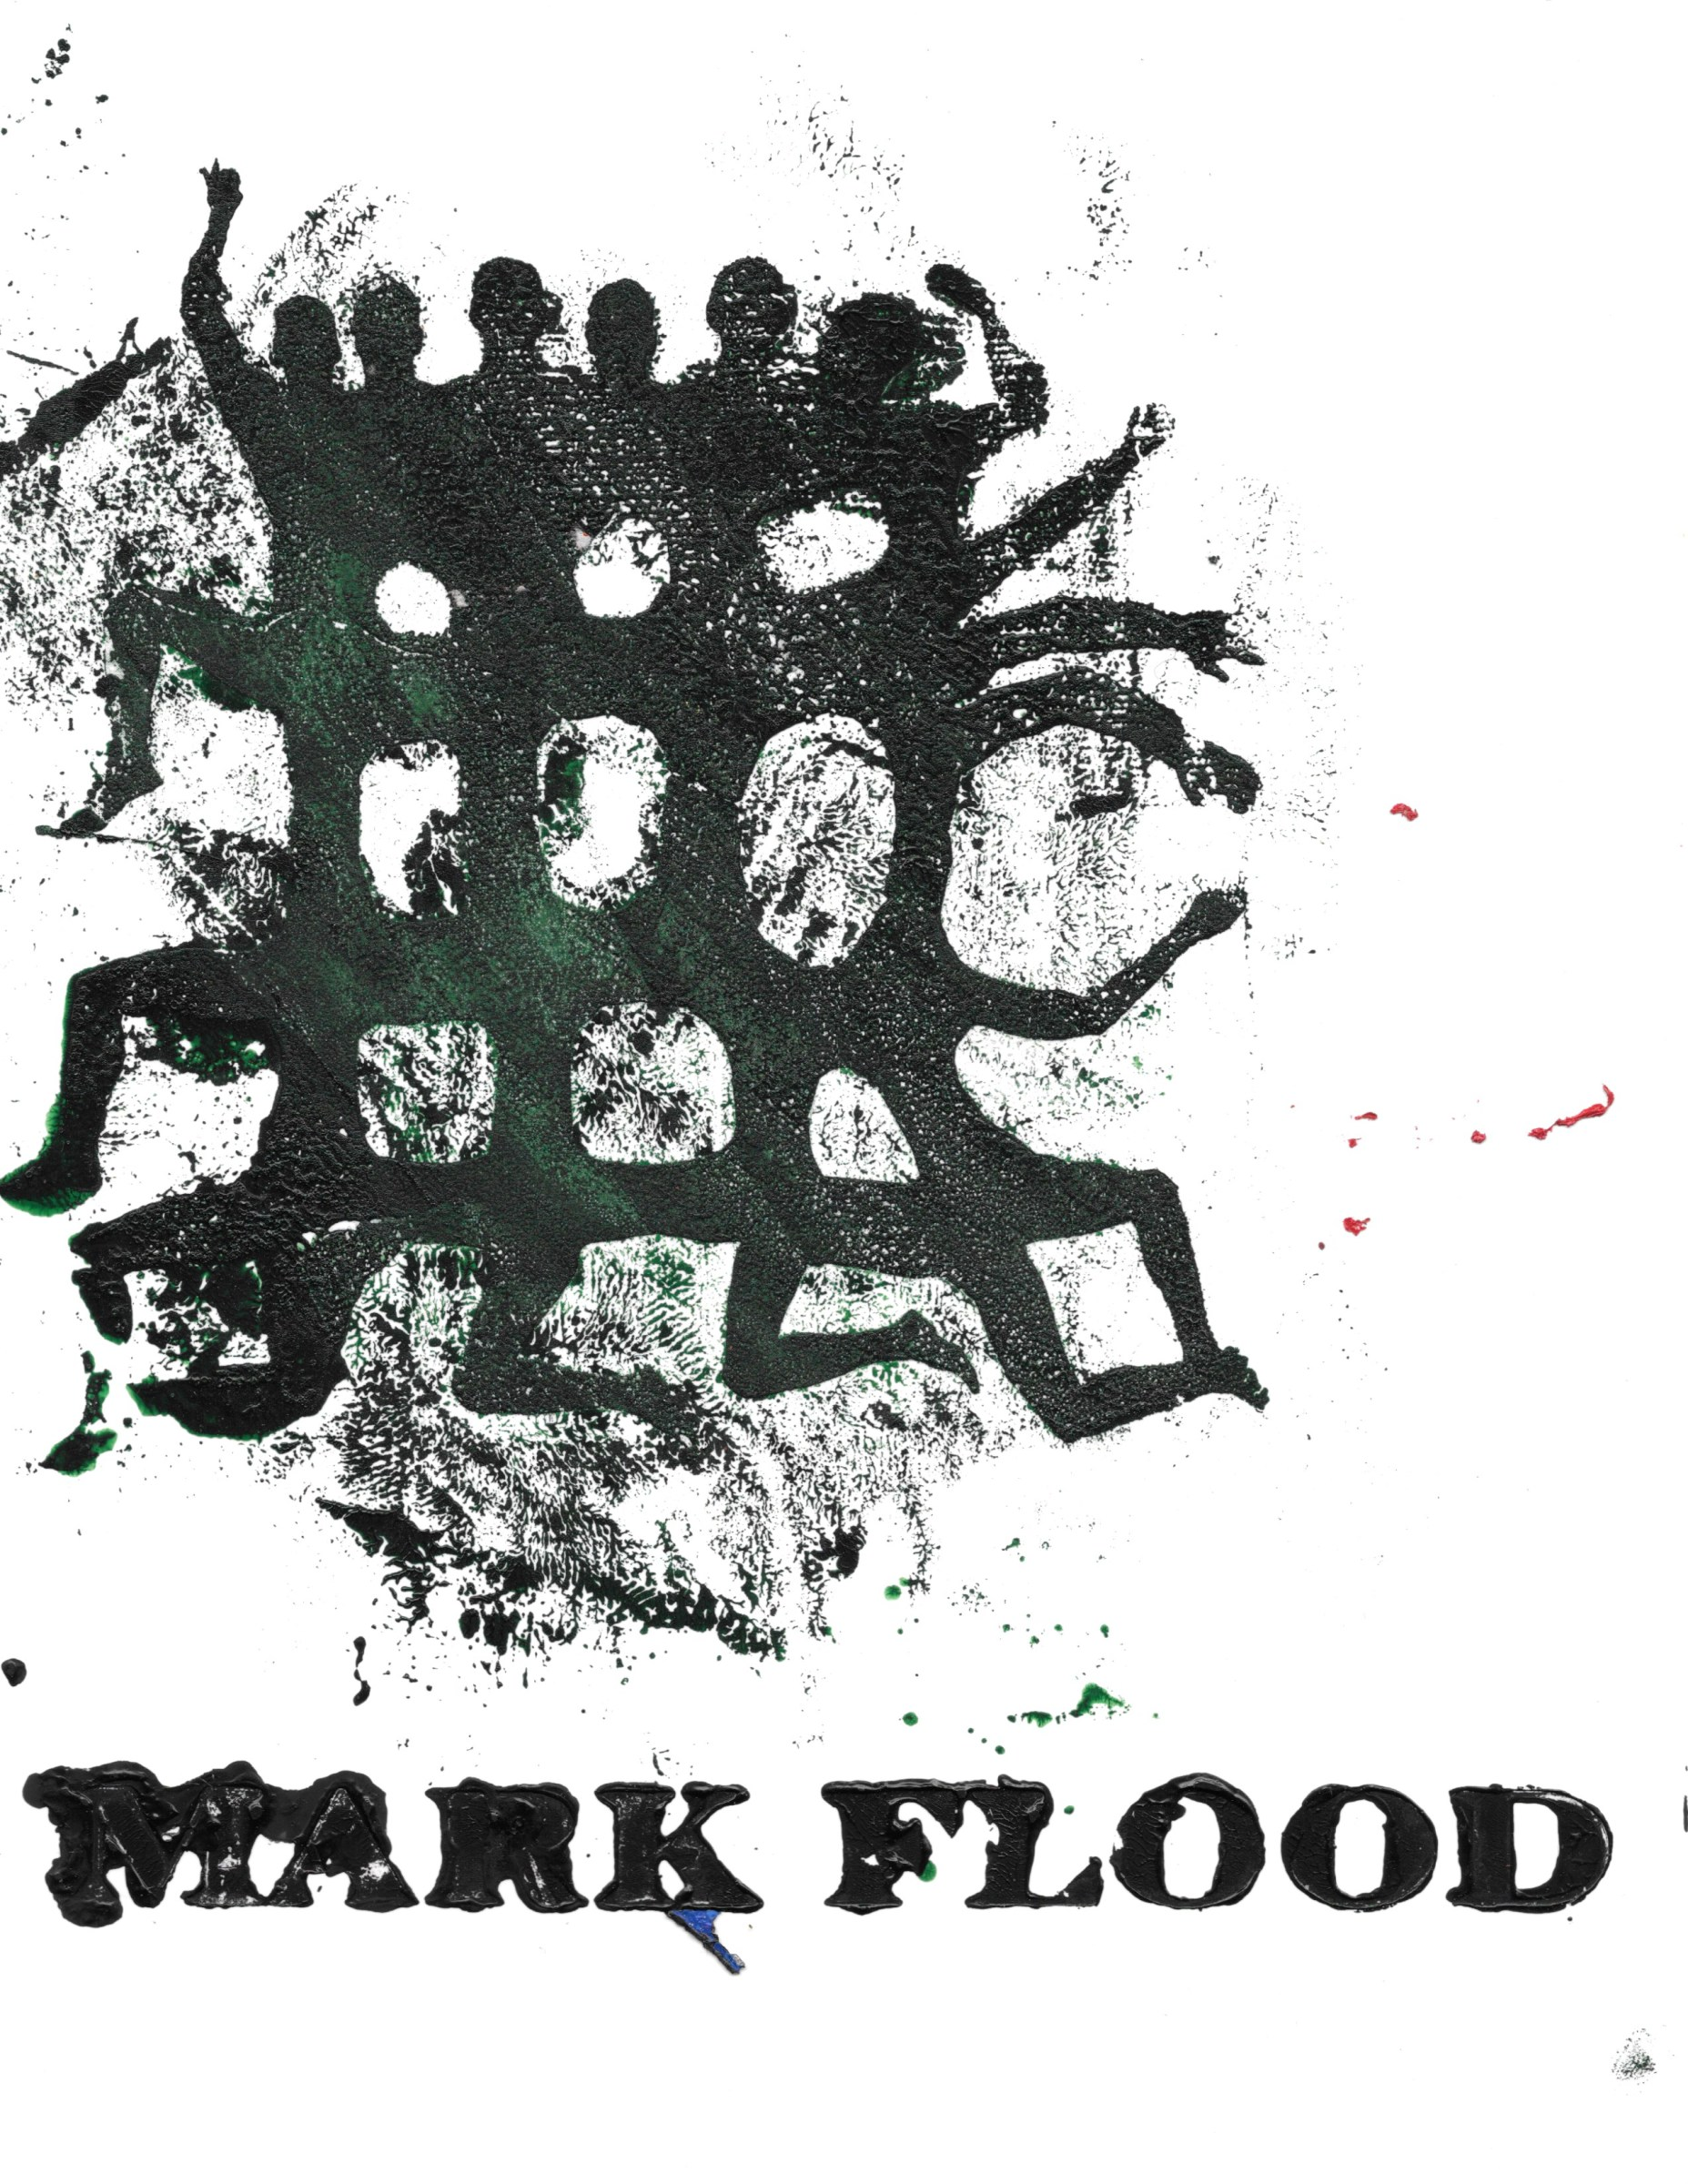 <span class=&#34;link fancybox-details-link&#34;><a href=&#34;/artworks/320-mark-flood-monster-bodies-2018/&#34;>View Detail Page</a></span><div class=&#34;artist&#34;><strong>Mark Flood</strong></div> <div class=&#34;title&#34;><em>Monster Bodies</em>, 2018</div> <div class=&#34;medium&#34;>Acrylic silk screen on paper</div> <div class=&#34;dimensions&#34;>8 x 11 in<br /> 20.3 x 27.9 cm</div>